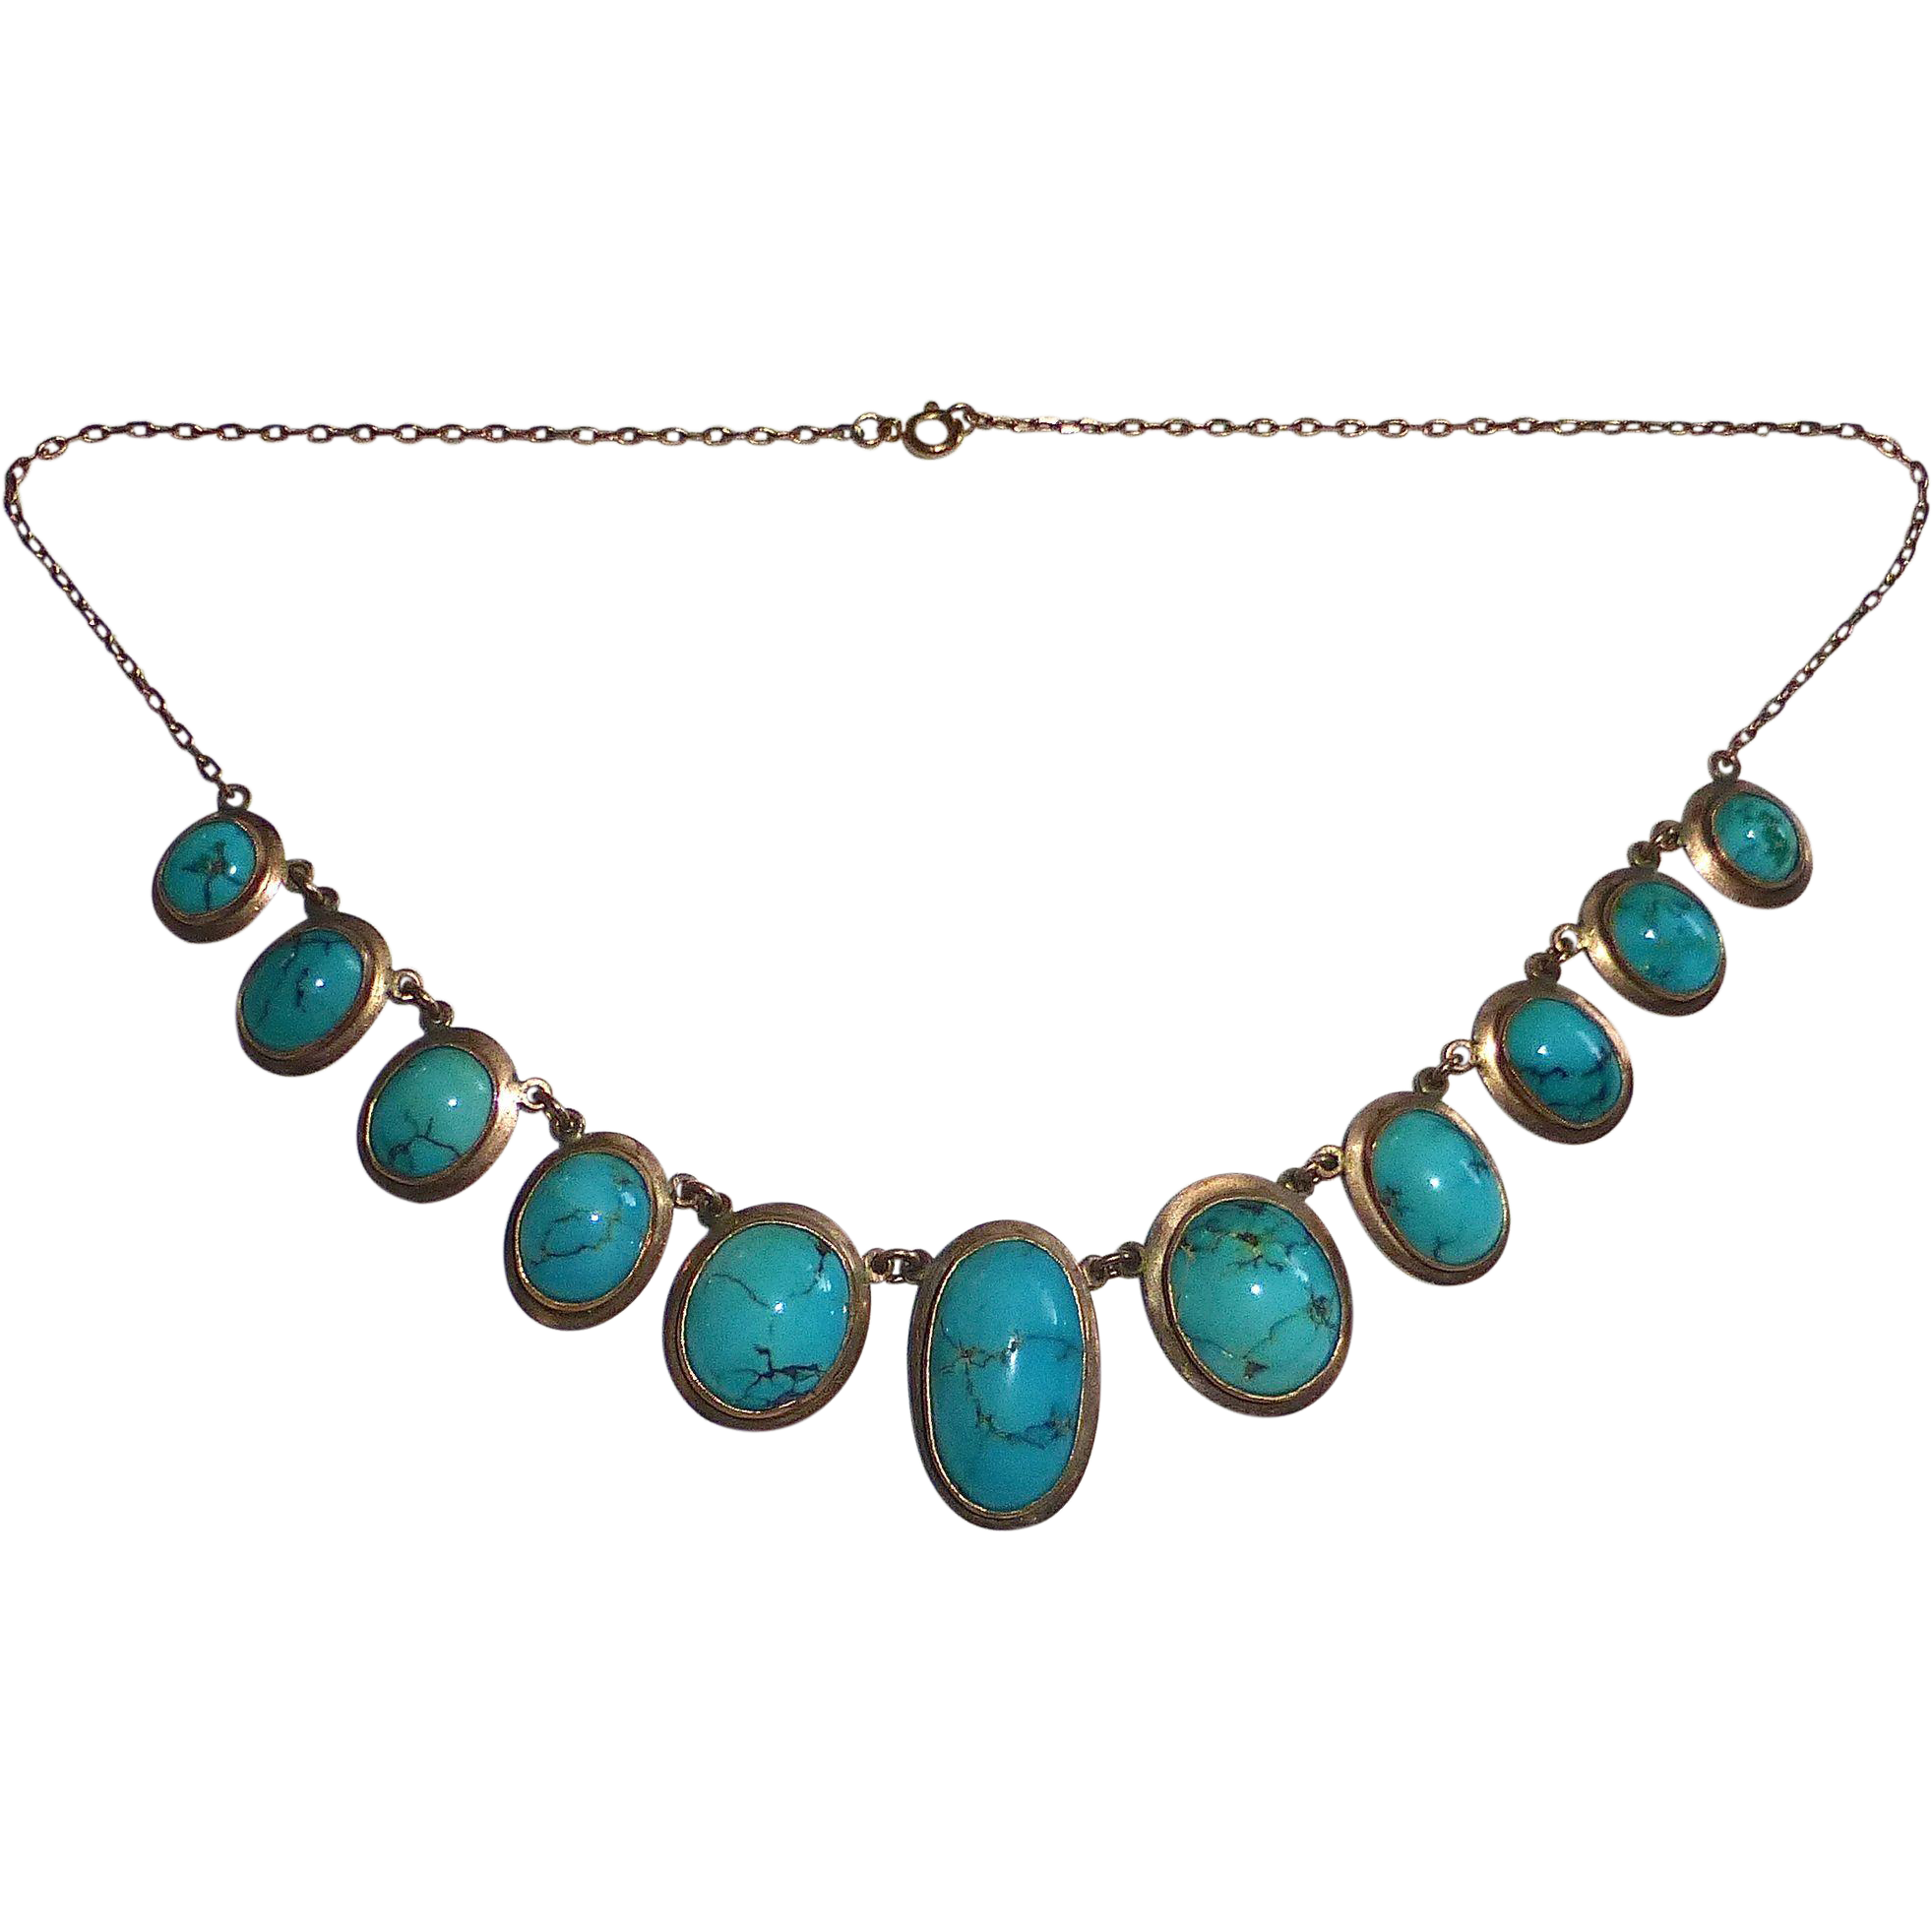 Antique Edwardian 10k Necklace w 11 Turquoise Cabochons